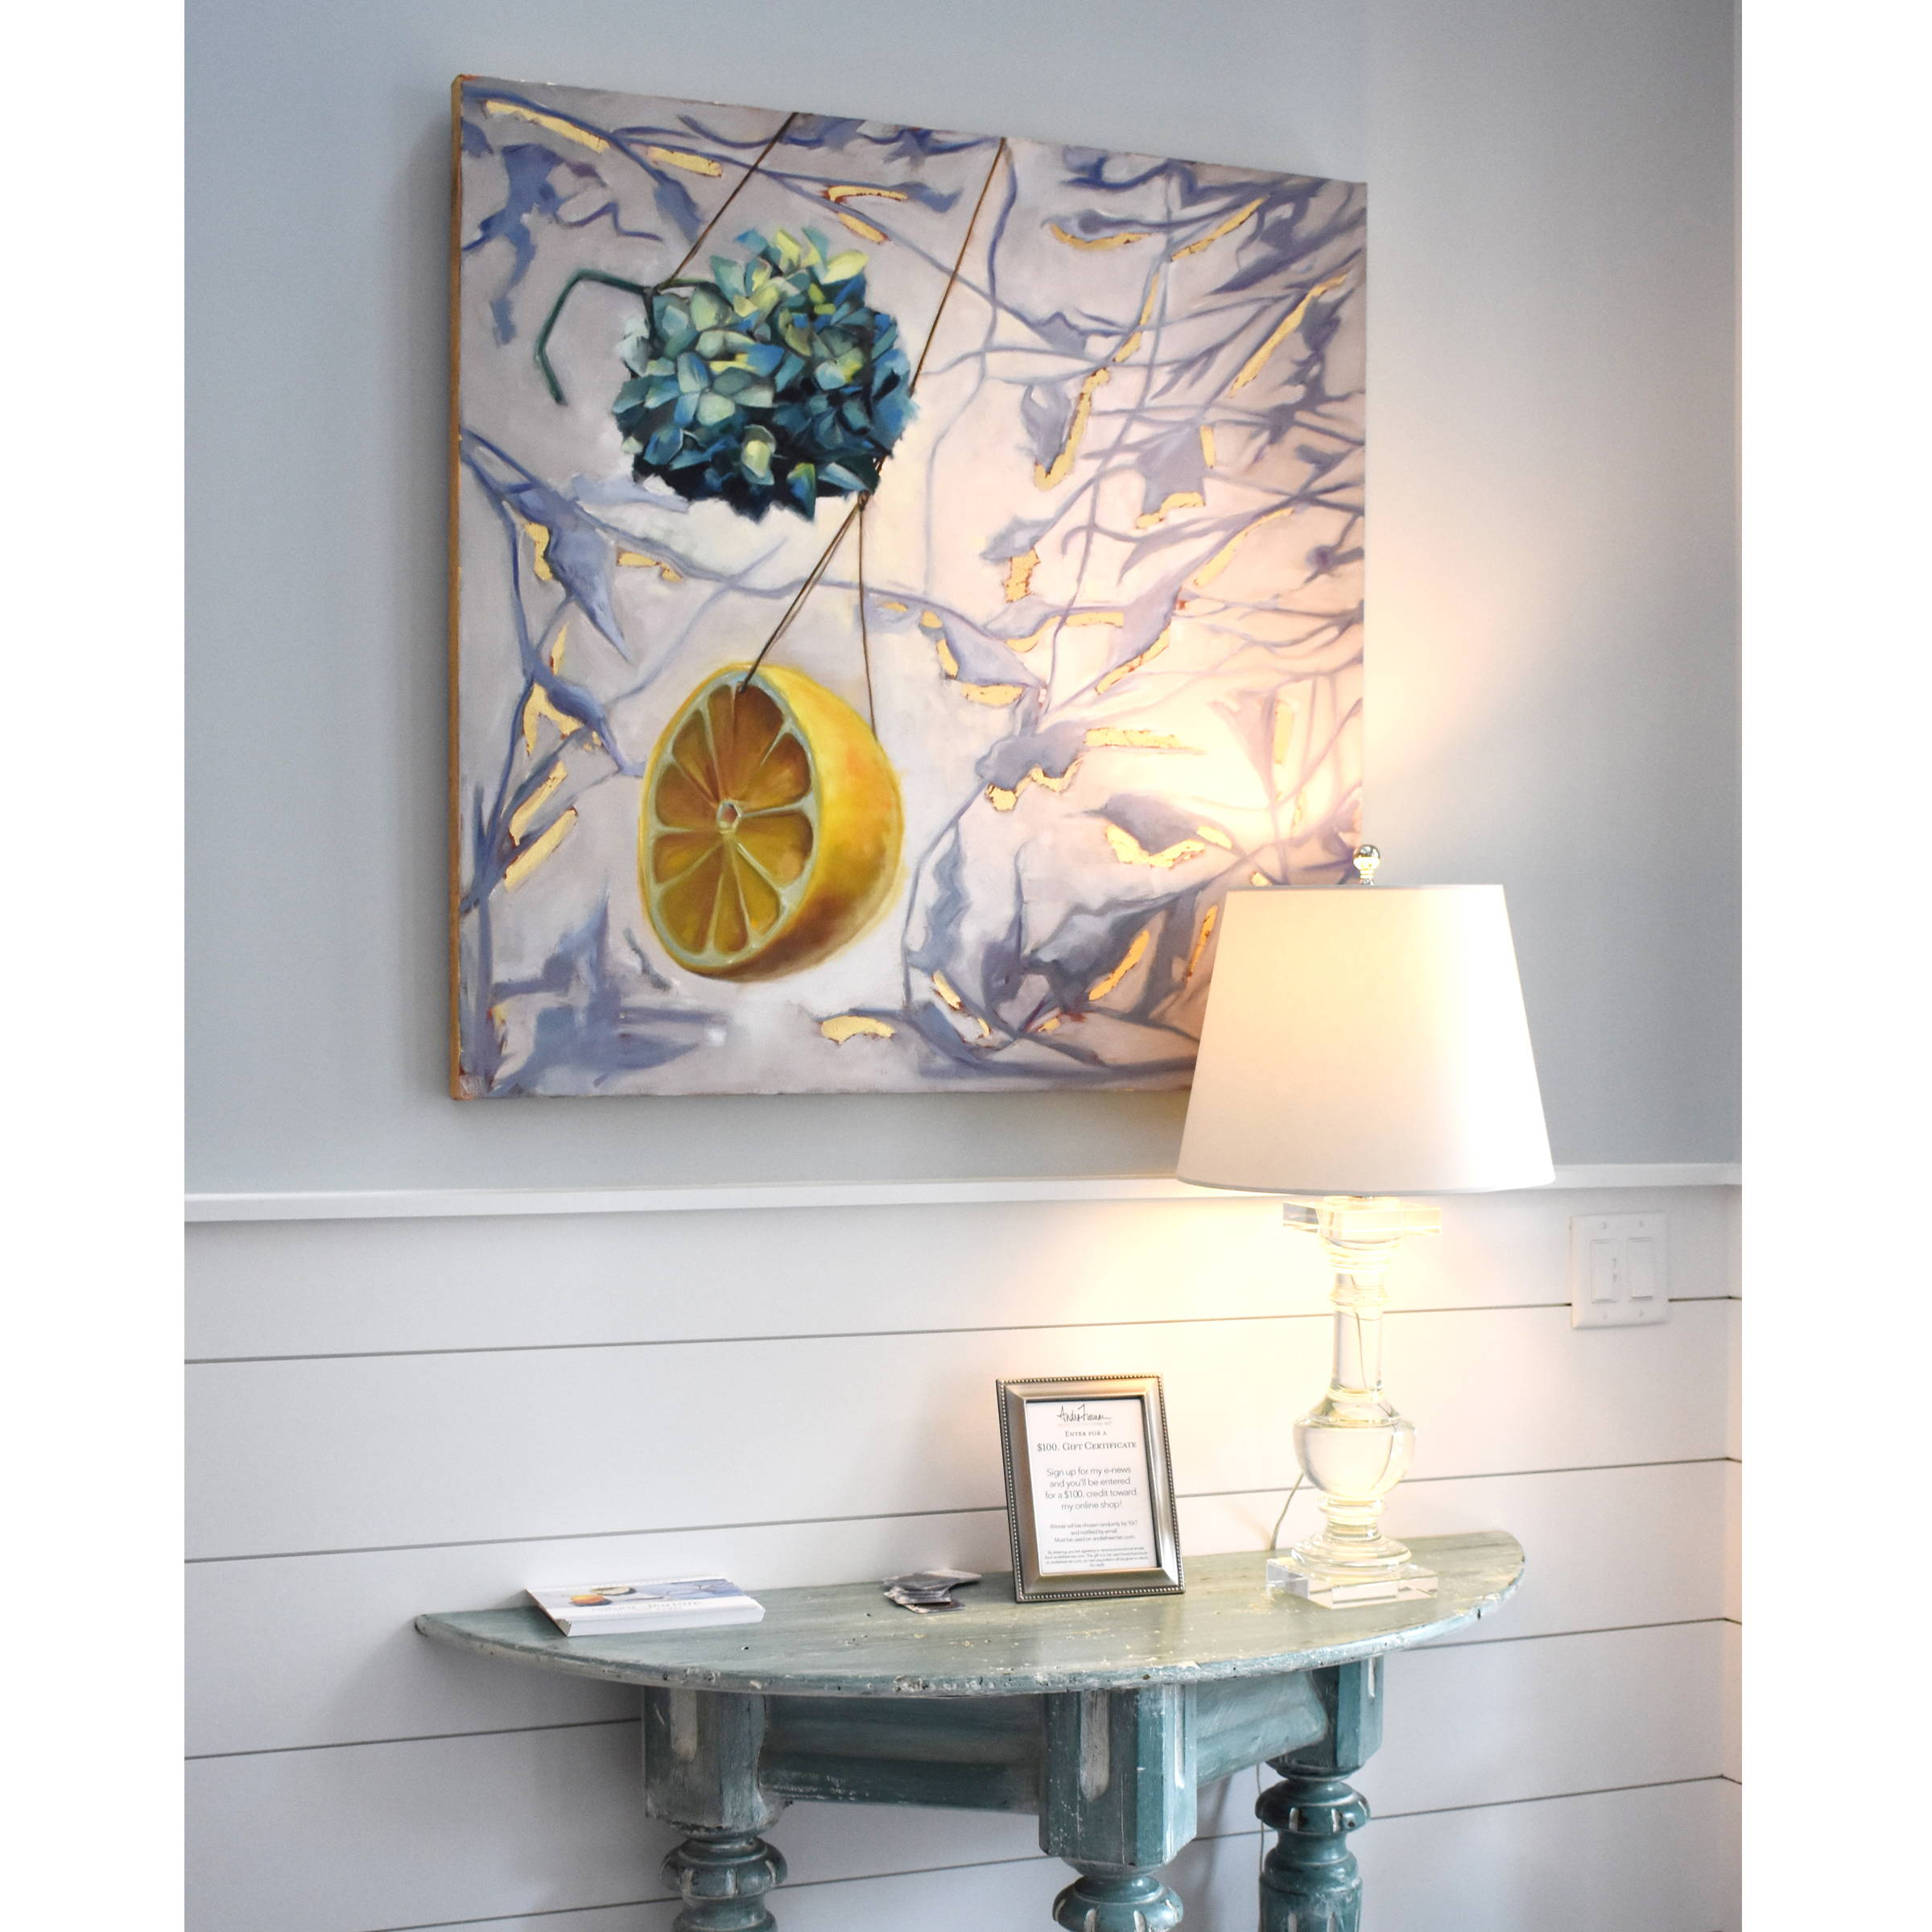 Keeper, Oil painting of lemon and hydrangea modern contemporary painting by Andie Paradis Freeman